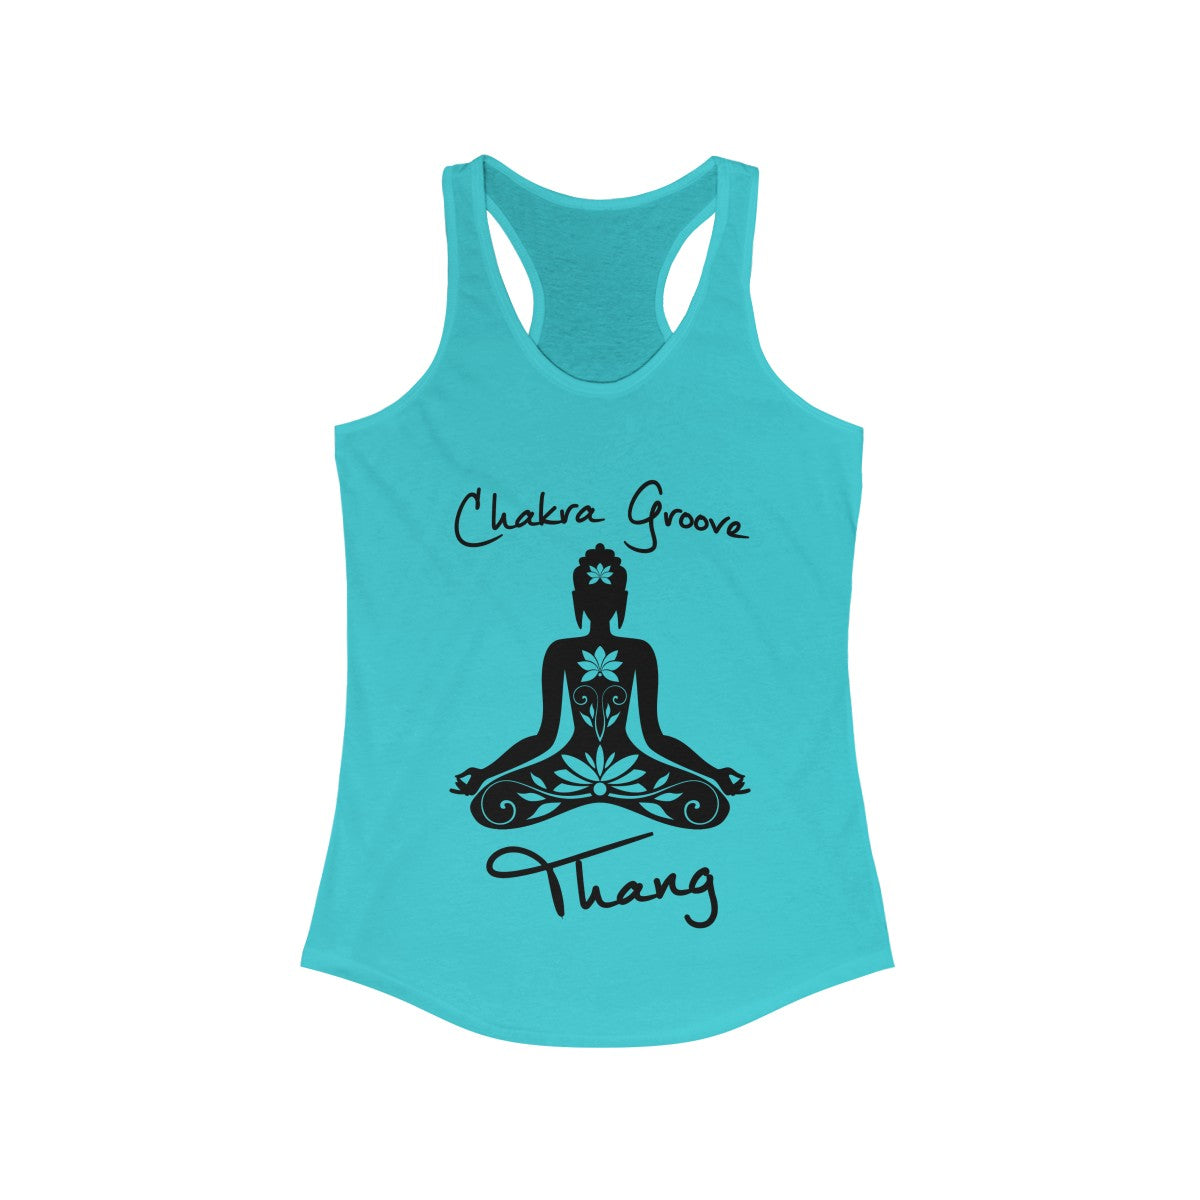 Chakra Groove Thang Women's Racerback Tank